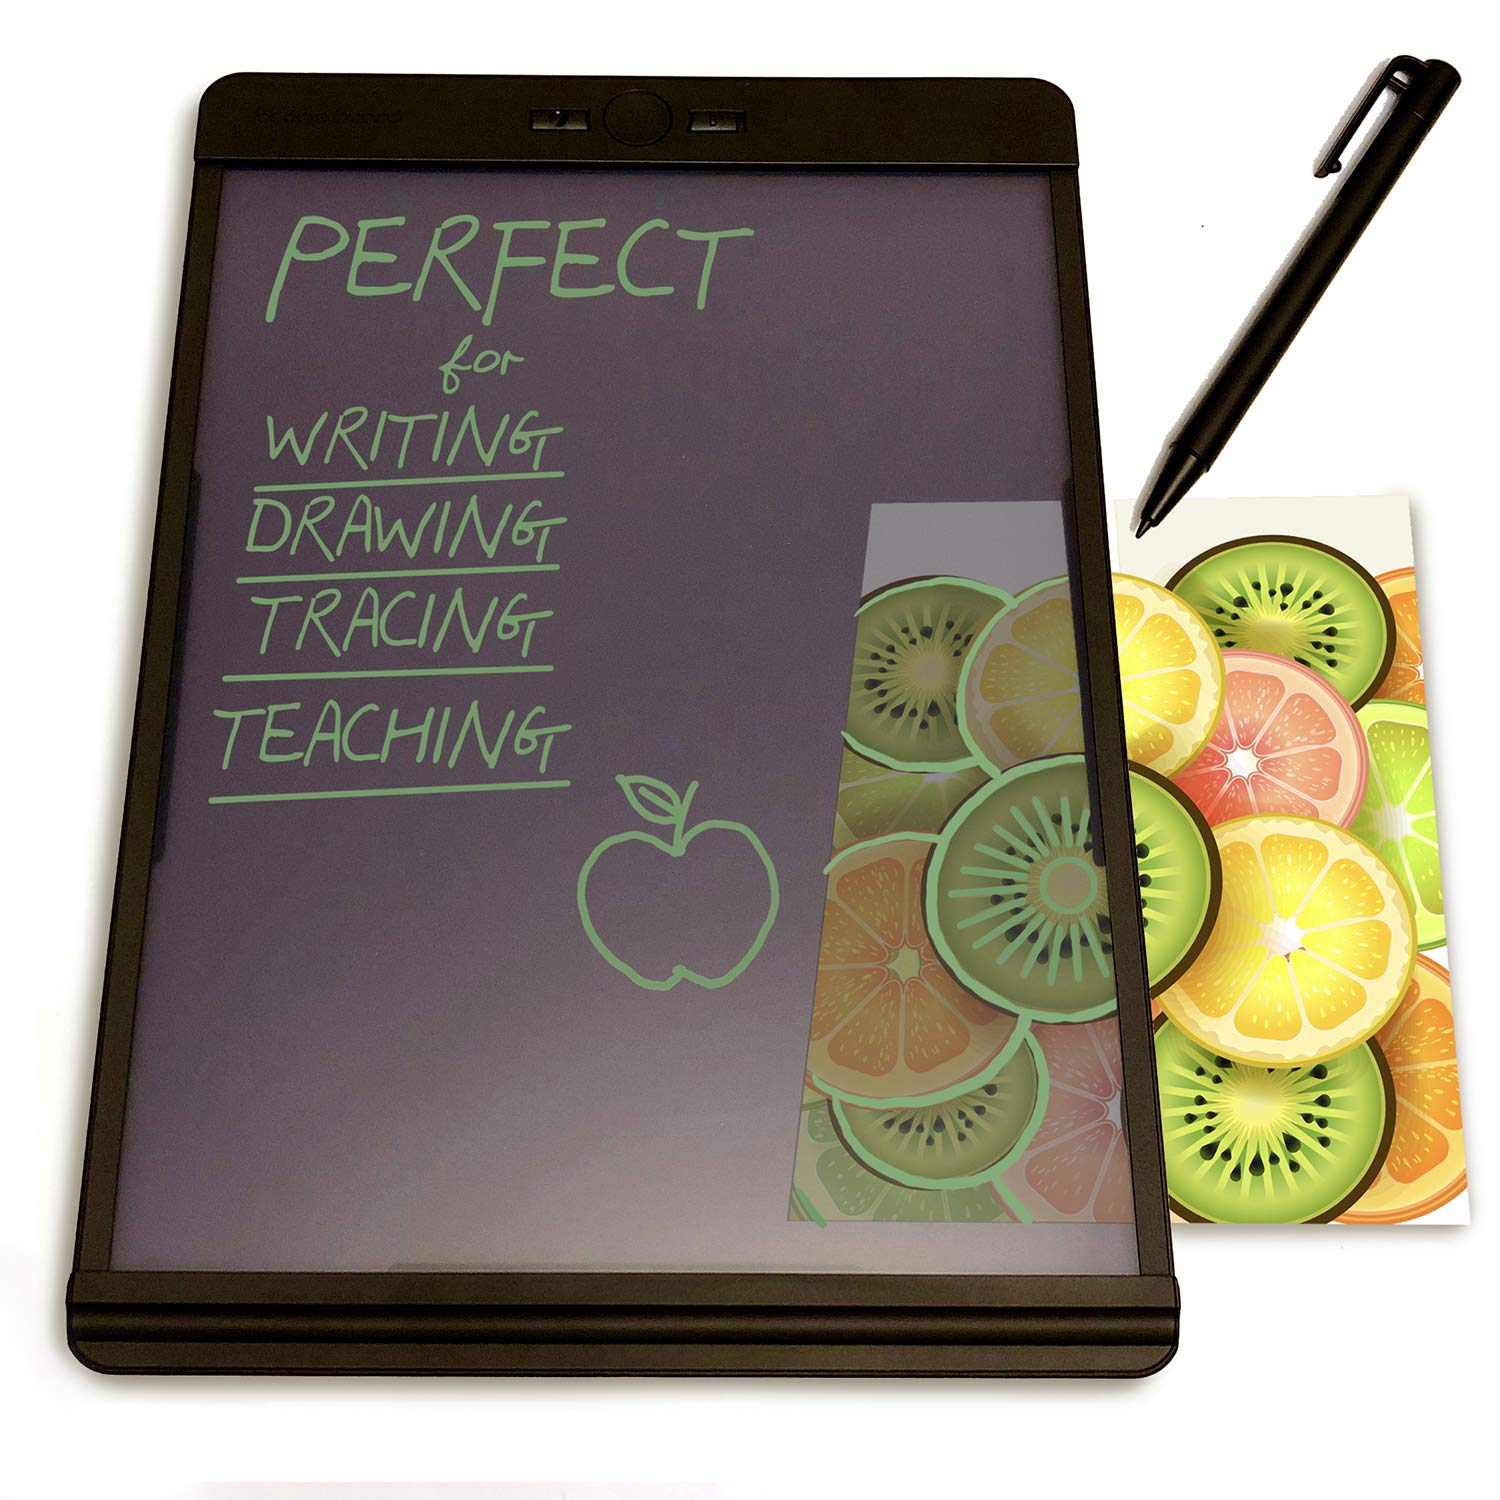 New Boogie Board Drawing Tablet Blackboard : Learning Resources Homeschool Supplies Great for Note Taking Drawing Pad Feels Just Like Paper and Pencil